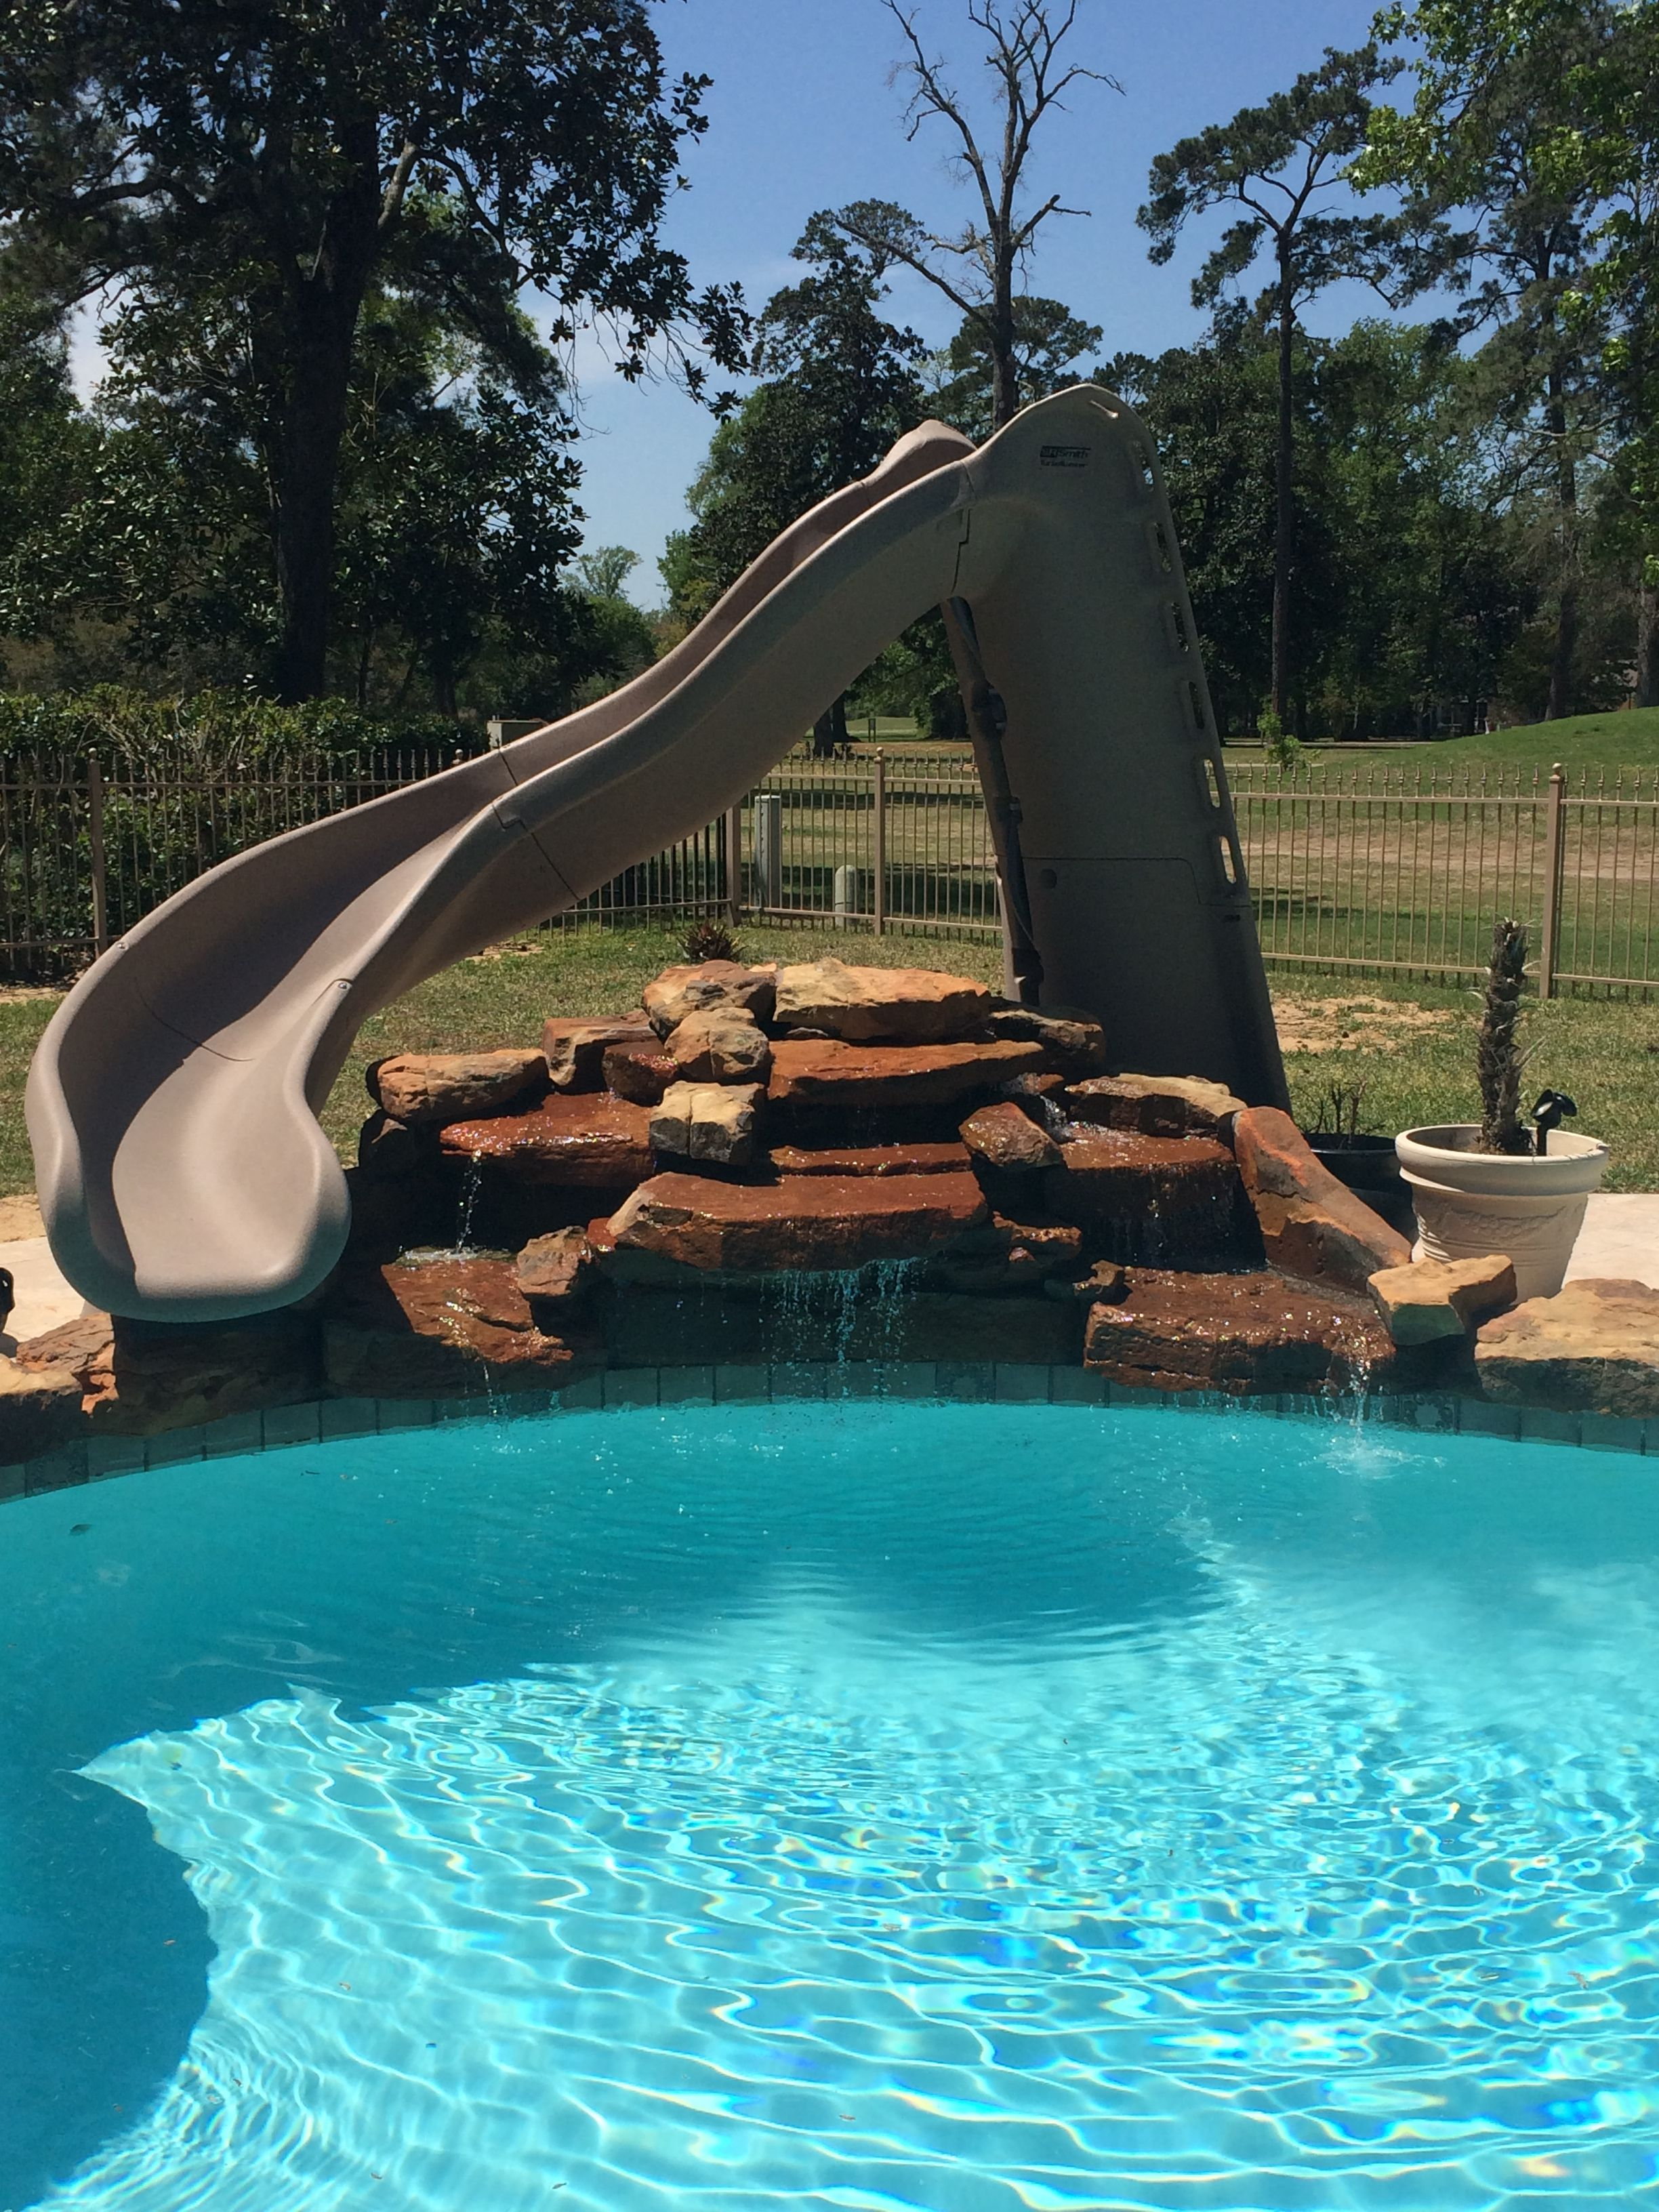 Inground swimming pool/Turbo Twister Slide/Rock Waterfall